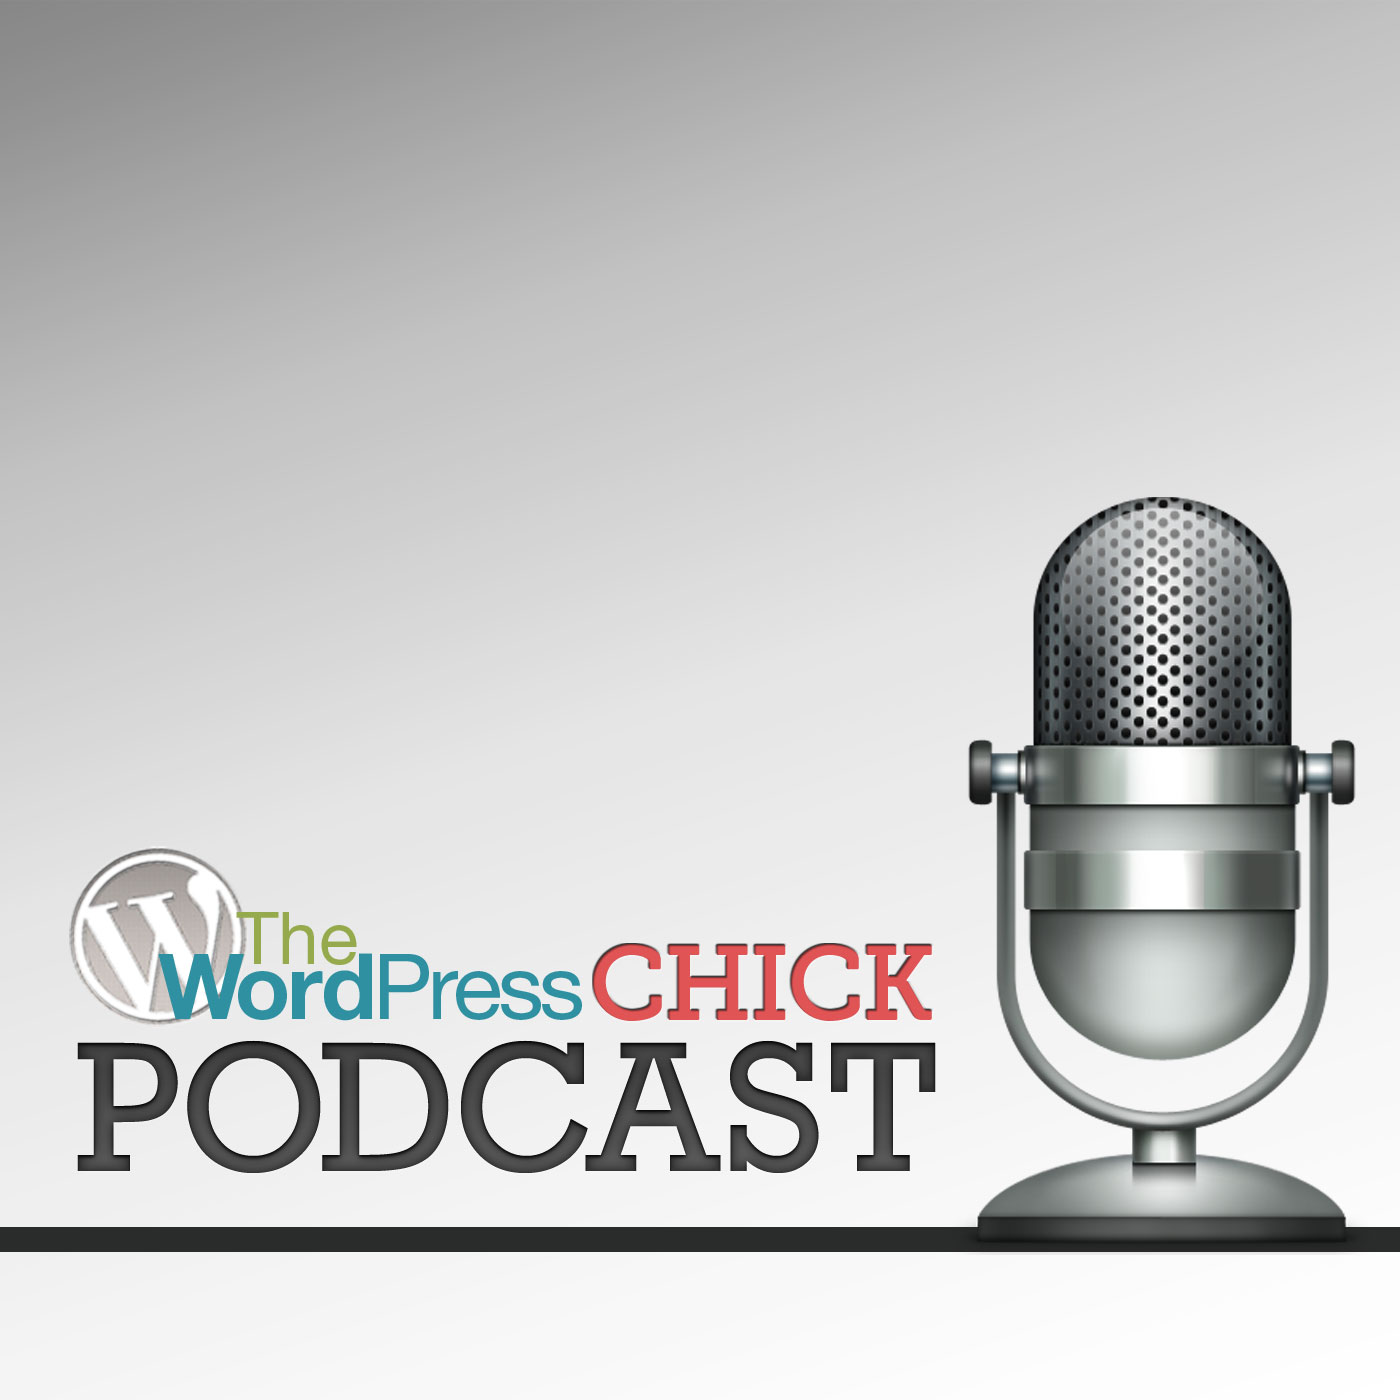 The WordPress Chick Podcast